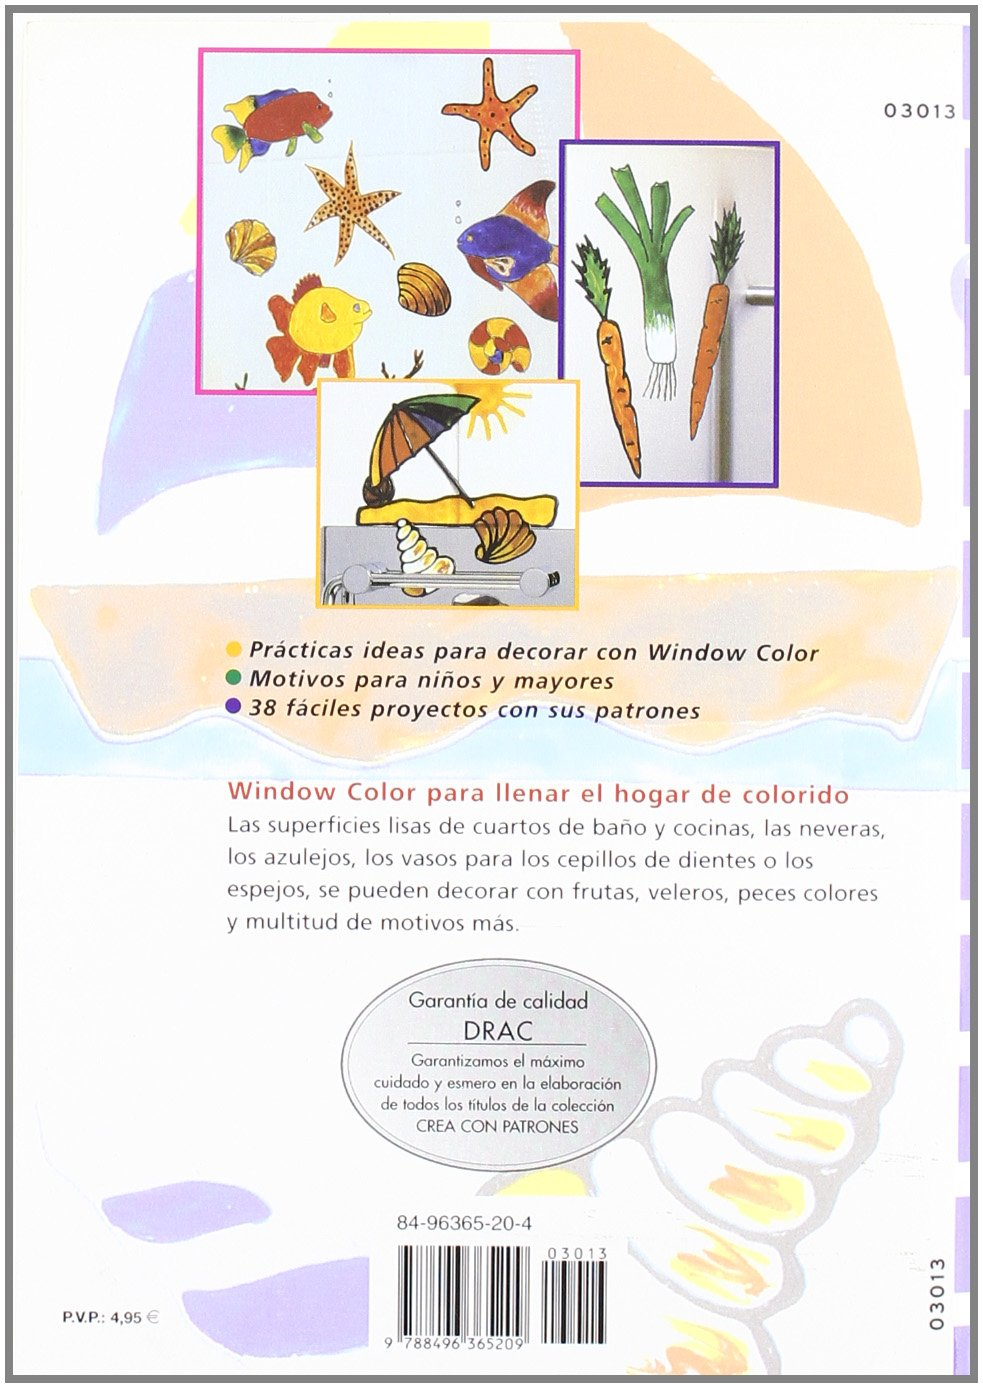 Hogares de ensueño con Window color, ideas para niños y mayores: Angelika; Gradtke, Melanie Tröger: 9788496365209: Amazon.com: Books